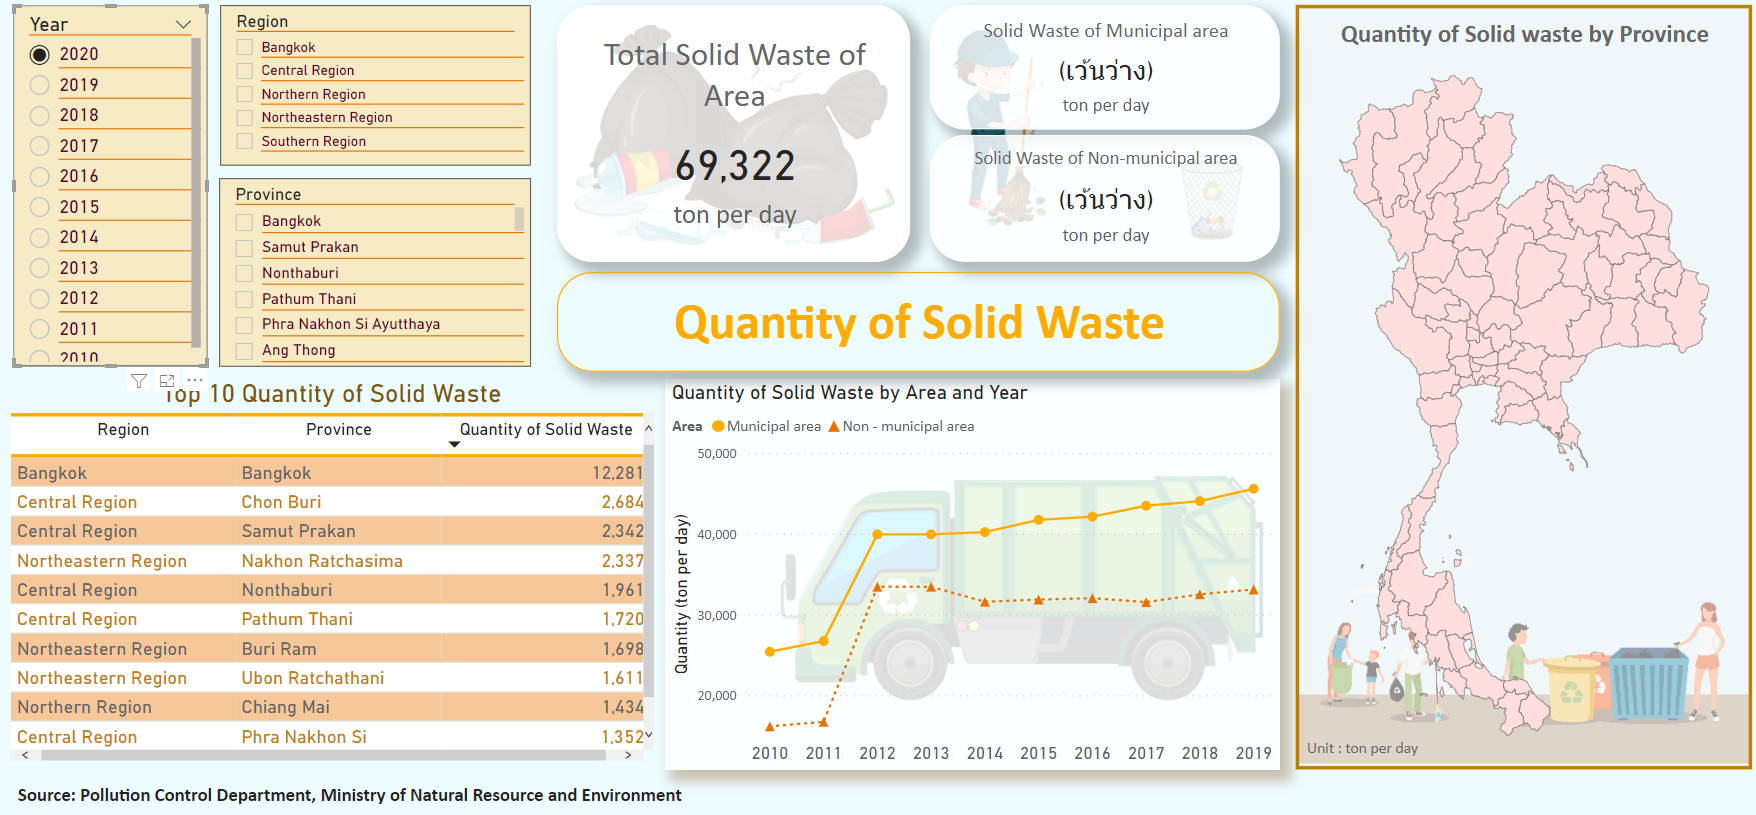 Quantity of Solid Waste